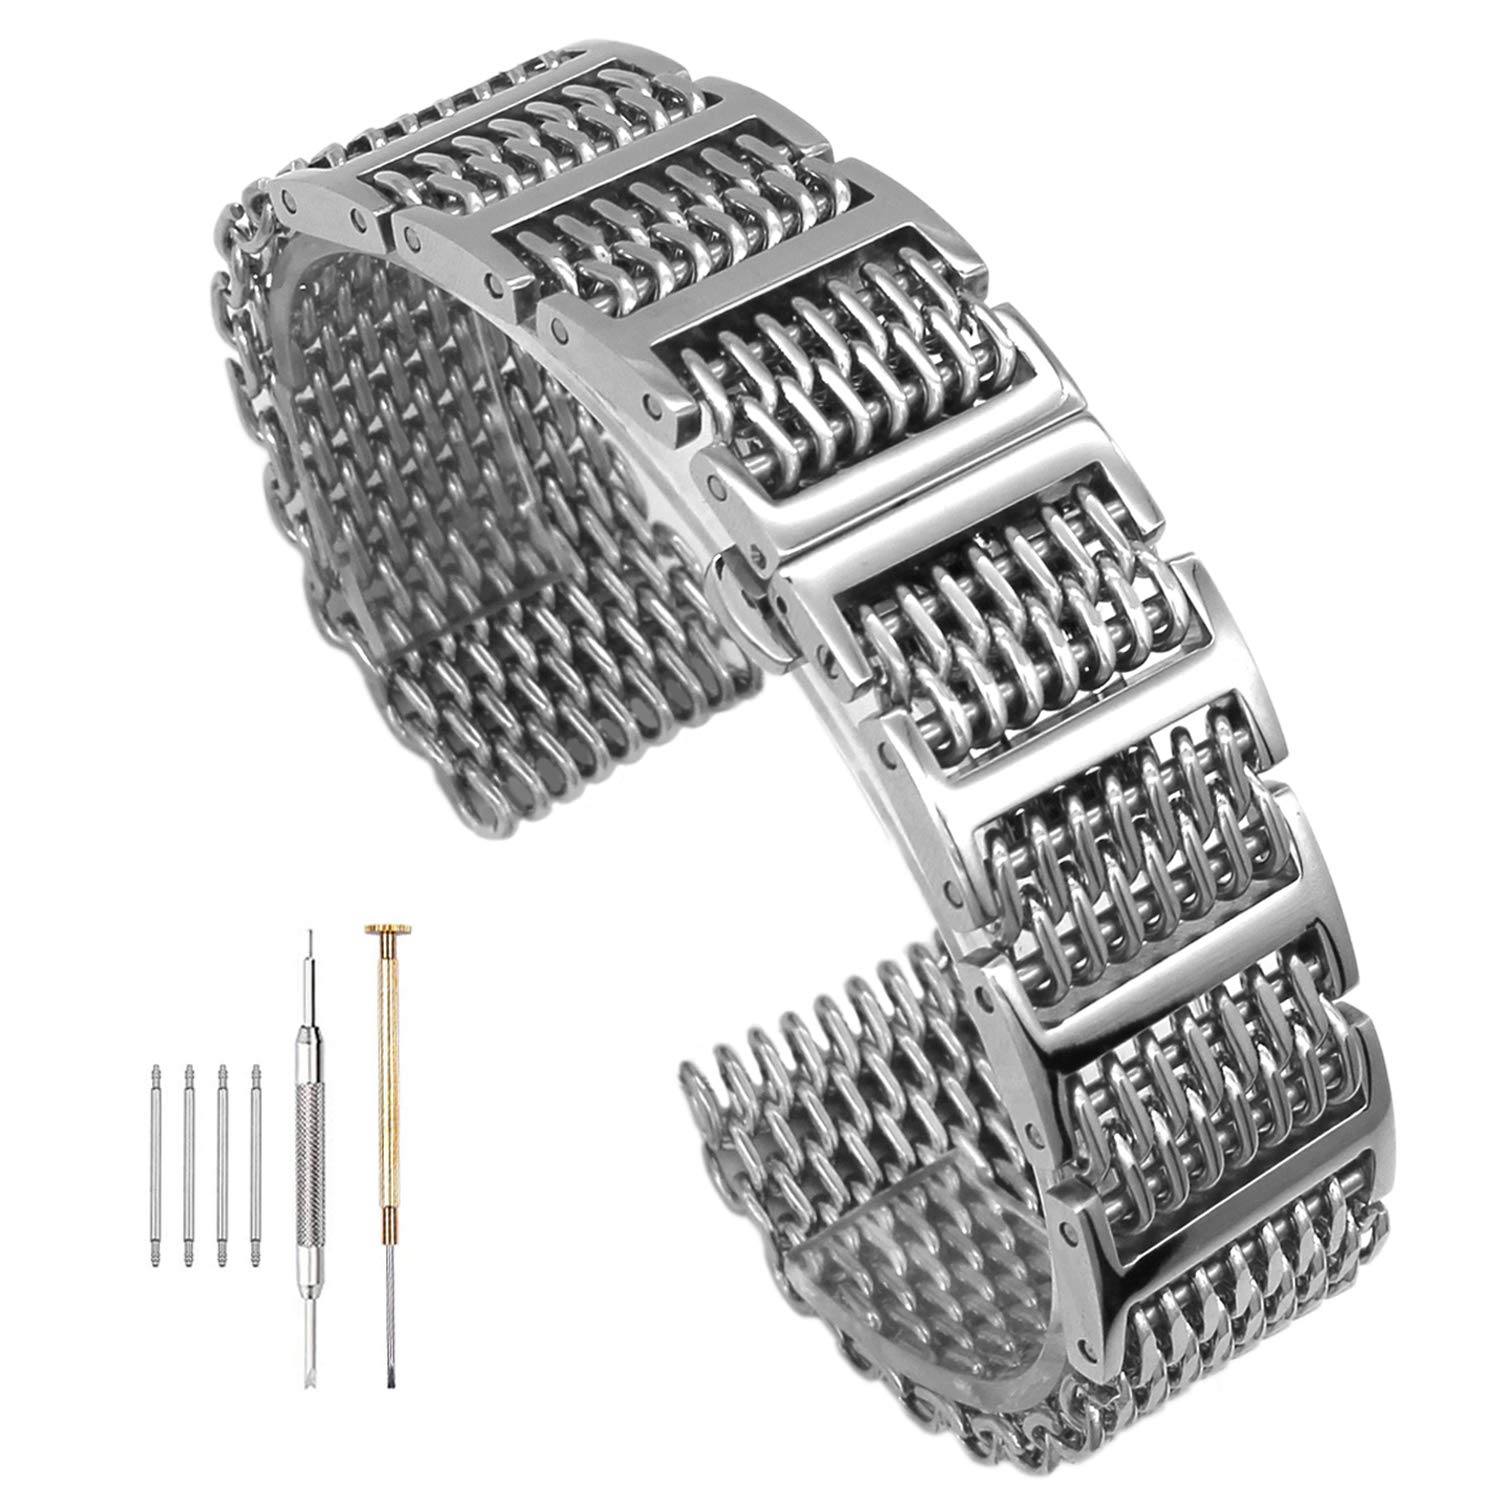 20mm/22mm24mm Shark Mesh H Link Butterfly Polished Stainless Steel Watch Band Butterfly Buckle Silver/Black (22mm, Silver) by Hstrap